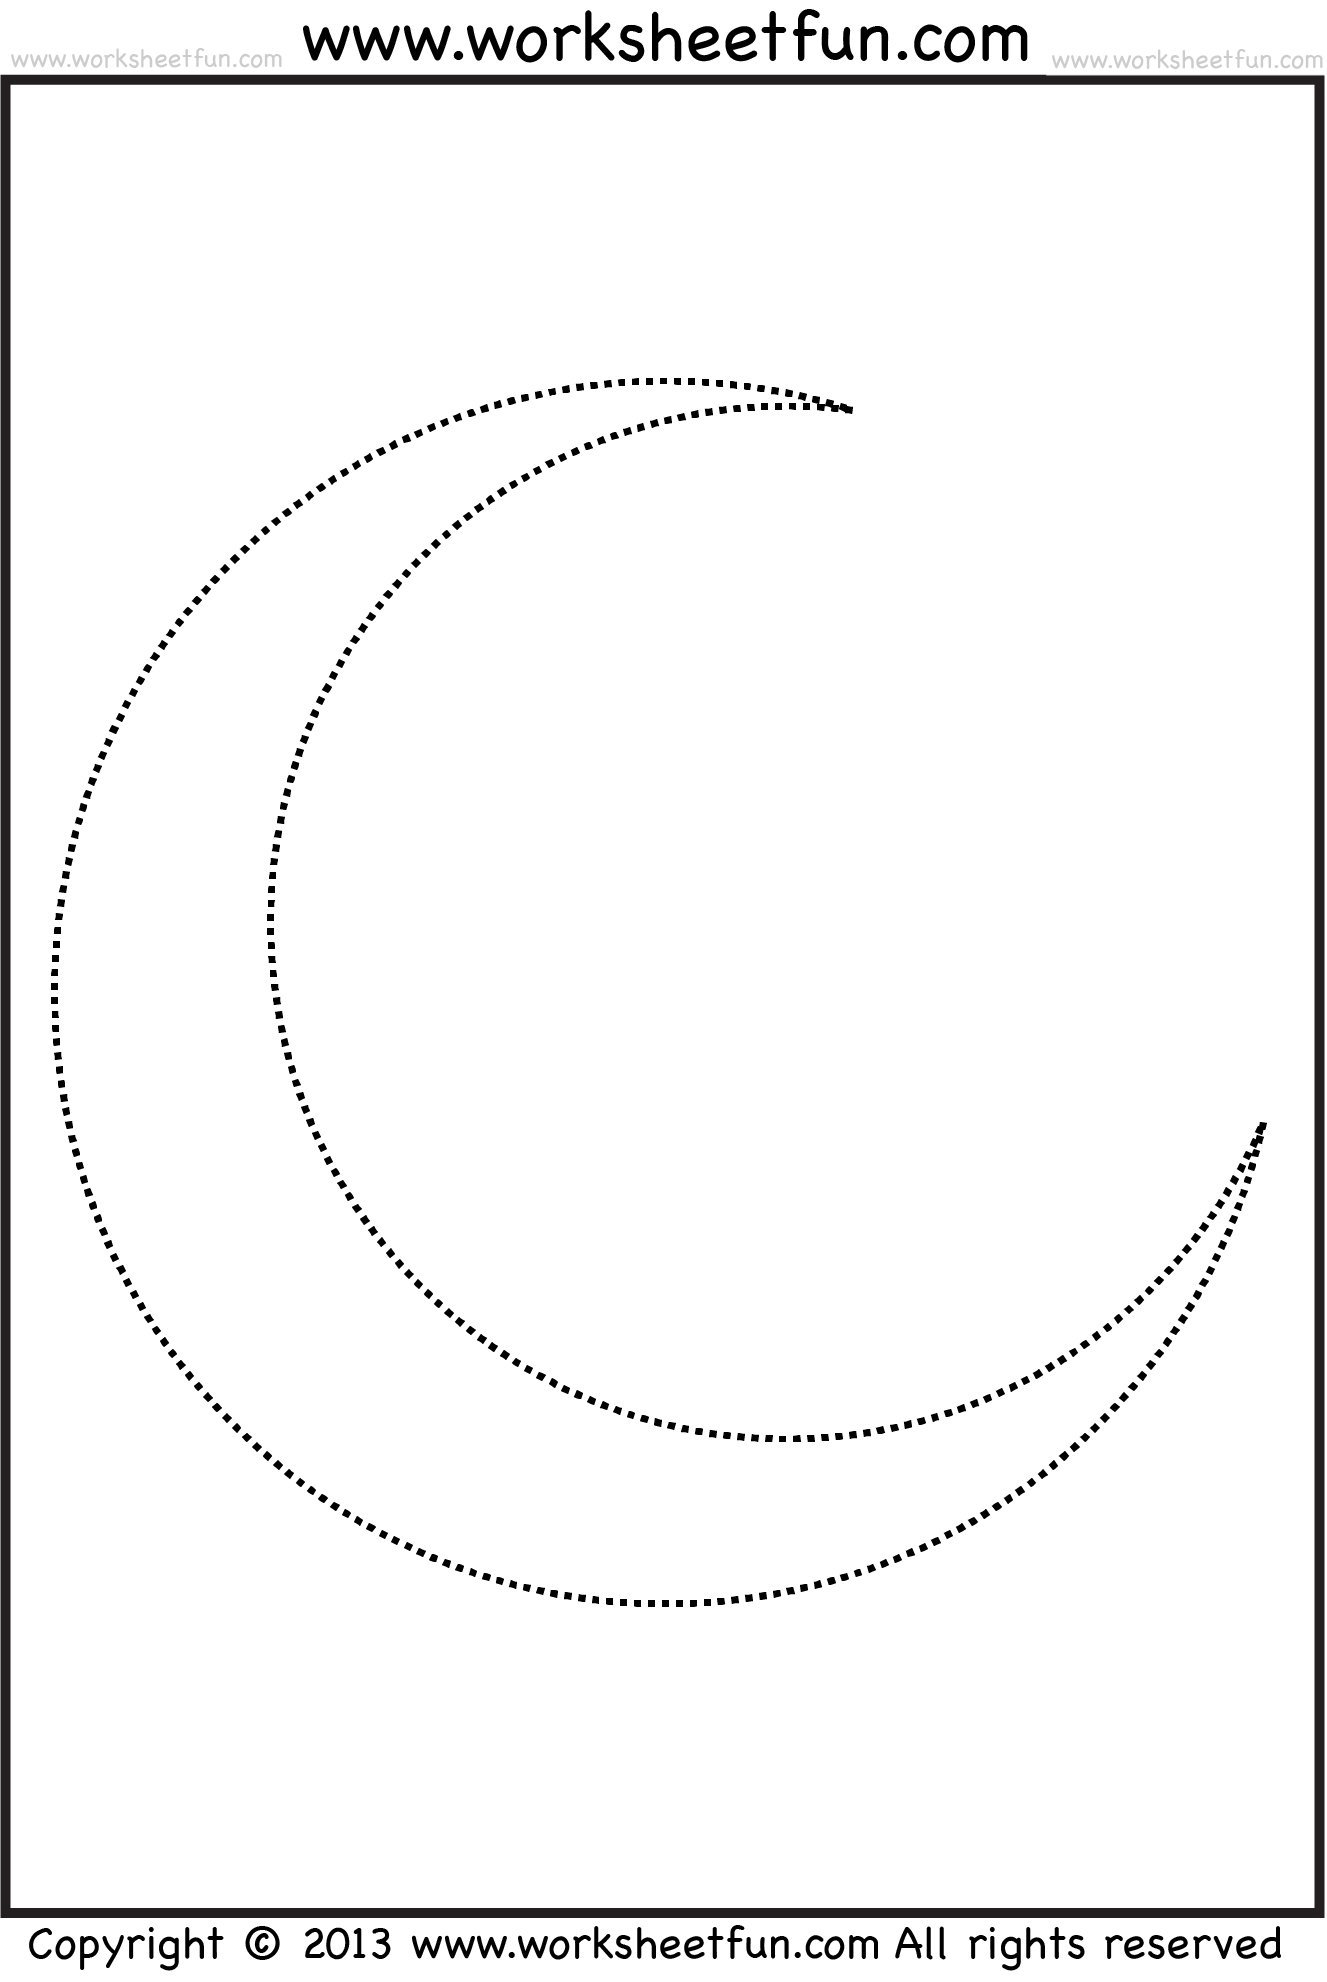 Moon Tracing And Coloring Free Printable Worksheets